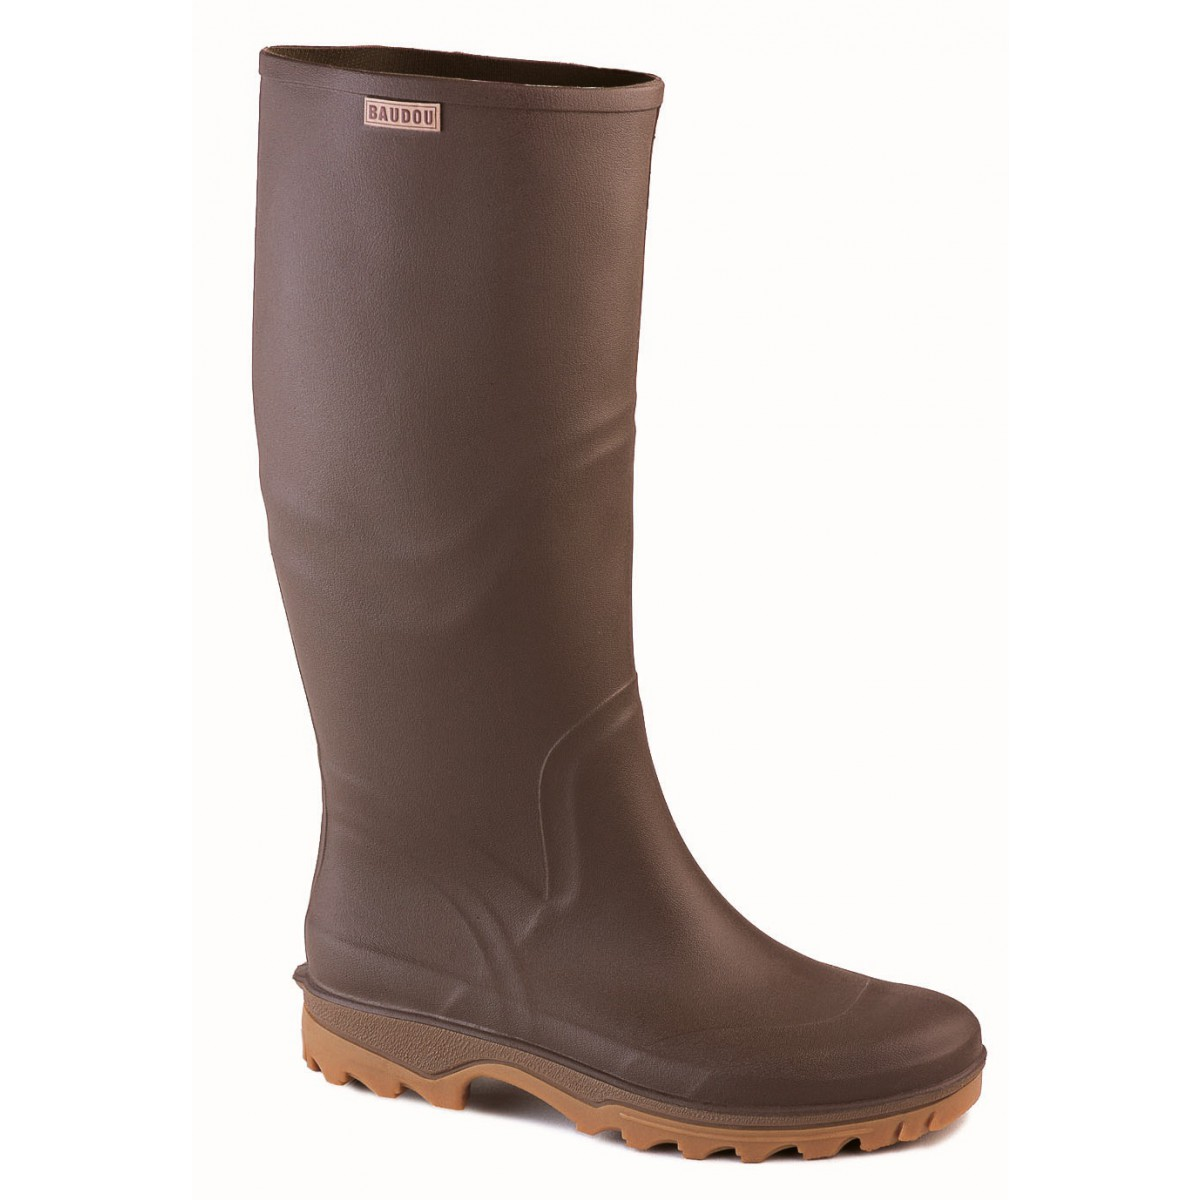 Bottes Bicross Baudou - Taille 42